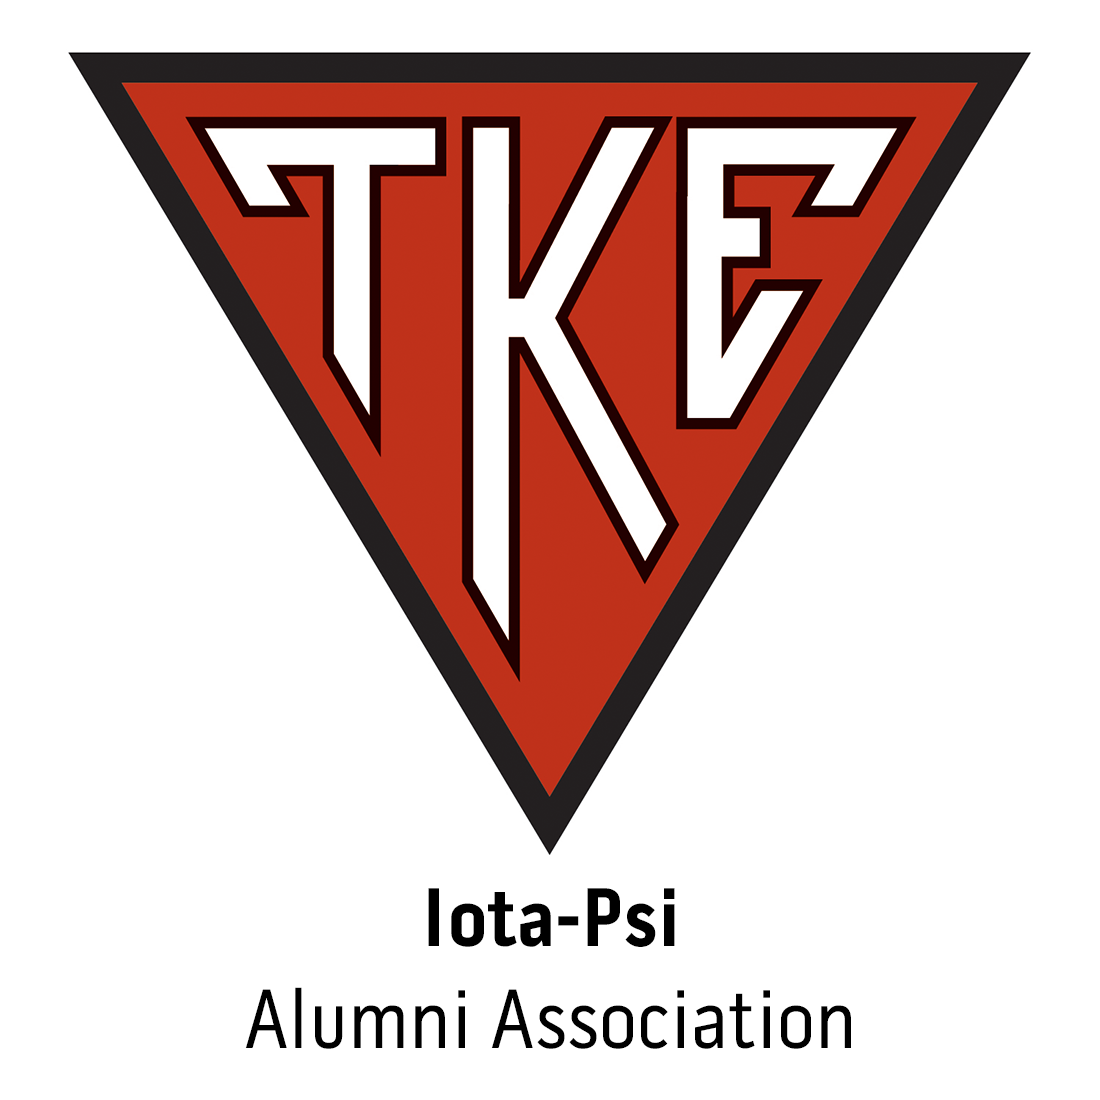 Iota-Psi Alumni Association Alumni at Dickinson State University